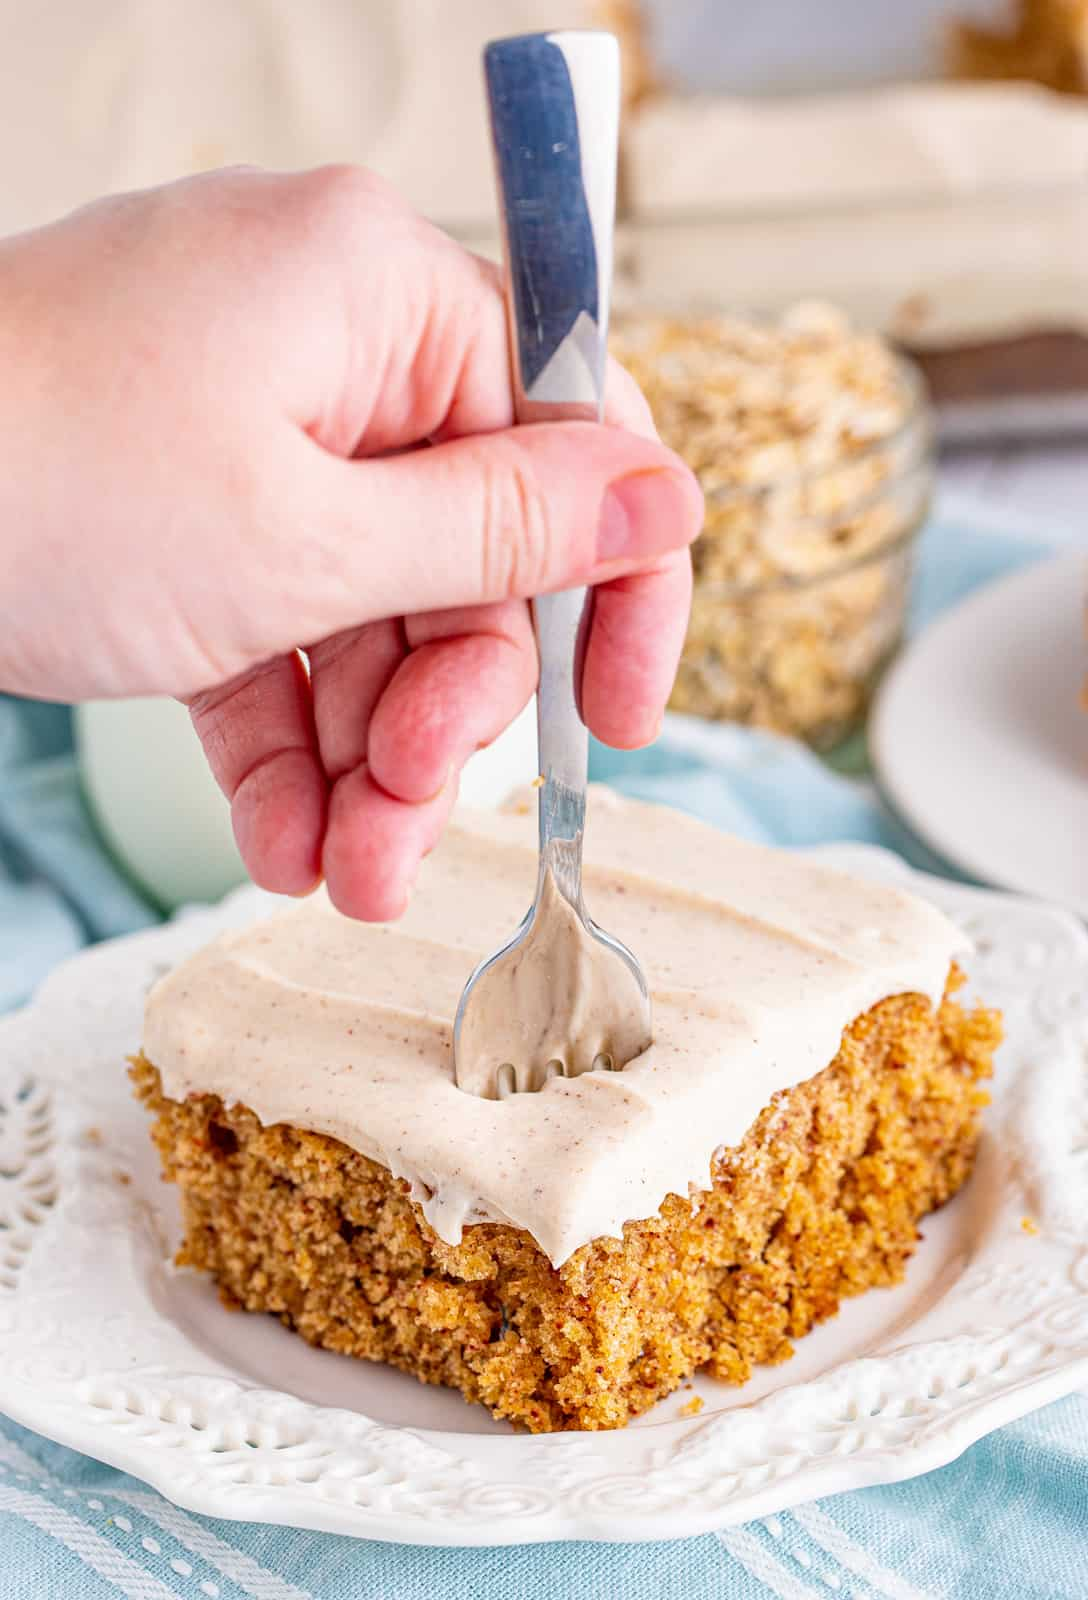 Fork going into Oatmeal Cake on white plate